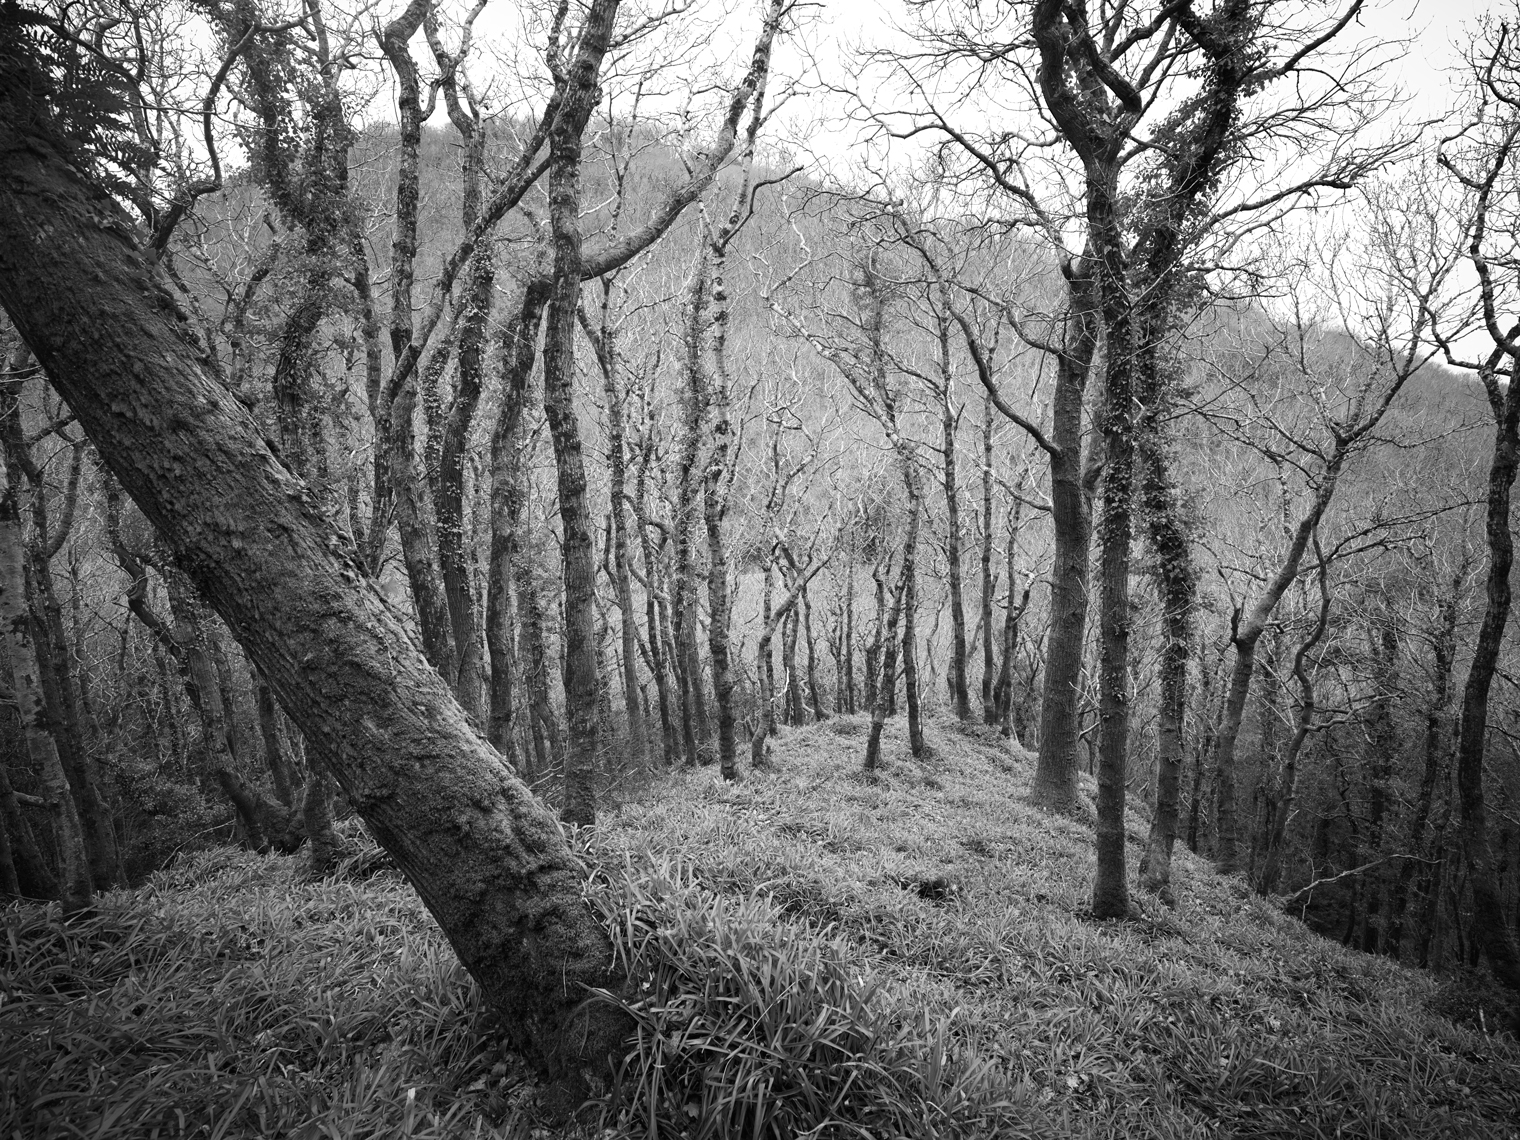 Jon Wyatt Photography - Atlantic oakwoods in Culbone Wood, North Somerset